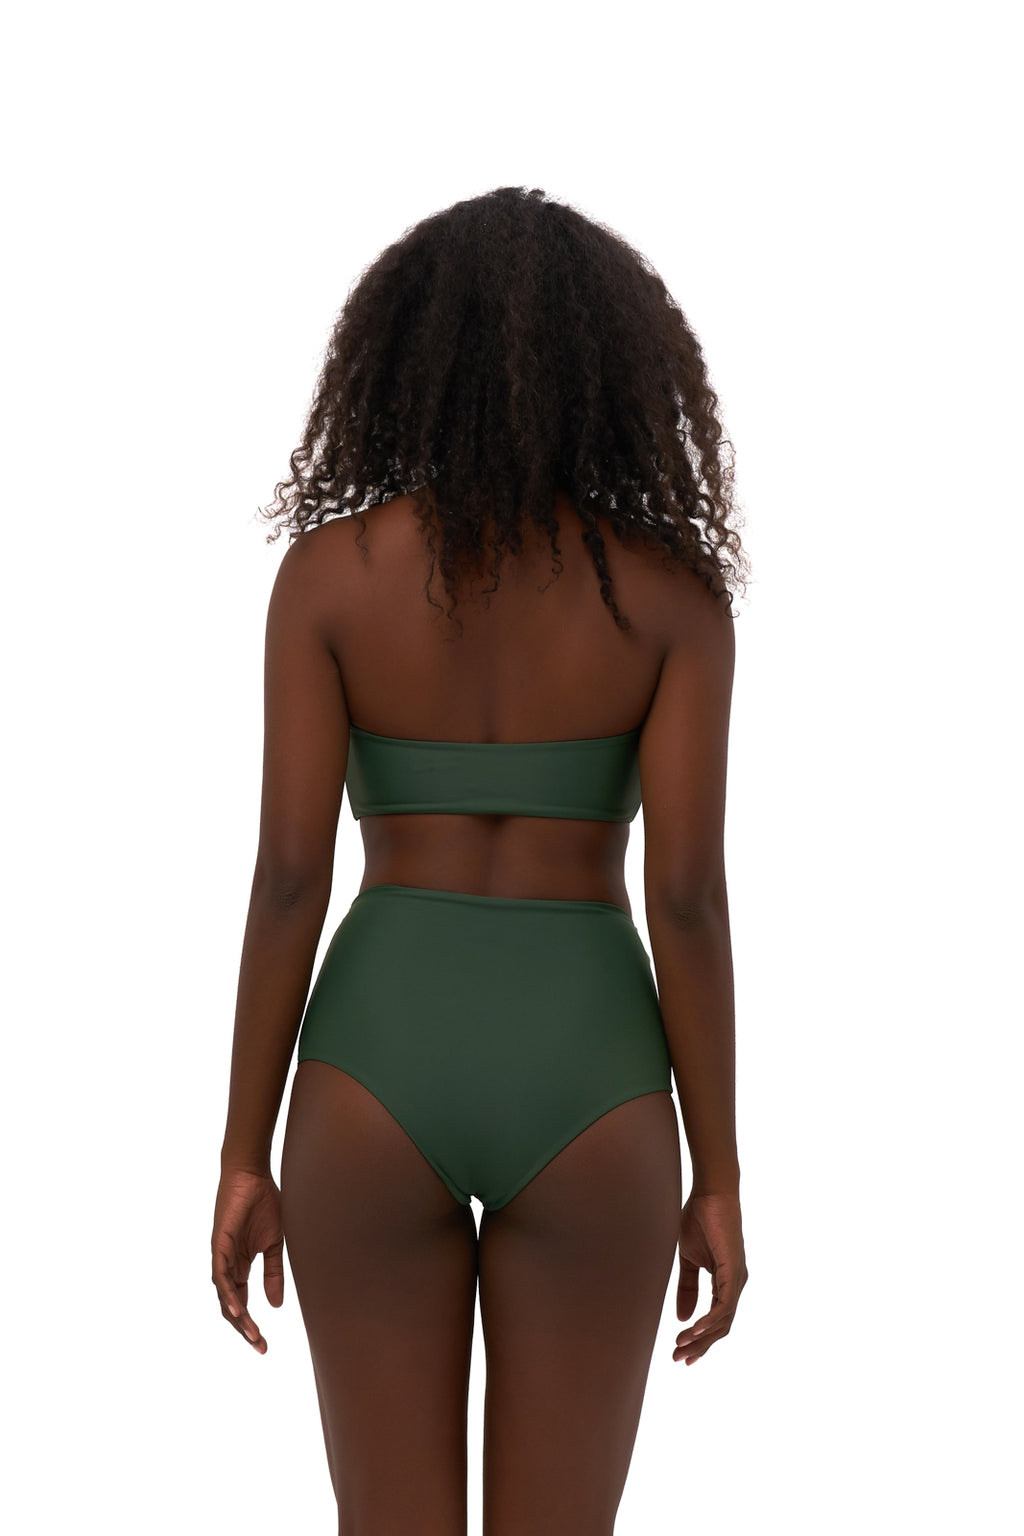 Storm Swimwear - Cannes - High Waist Bikini Bottom in Plain Bamboo